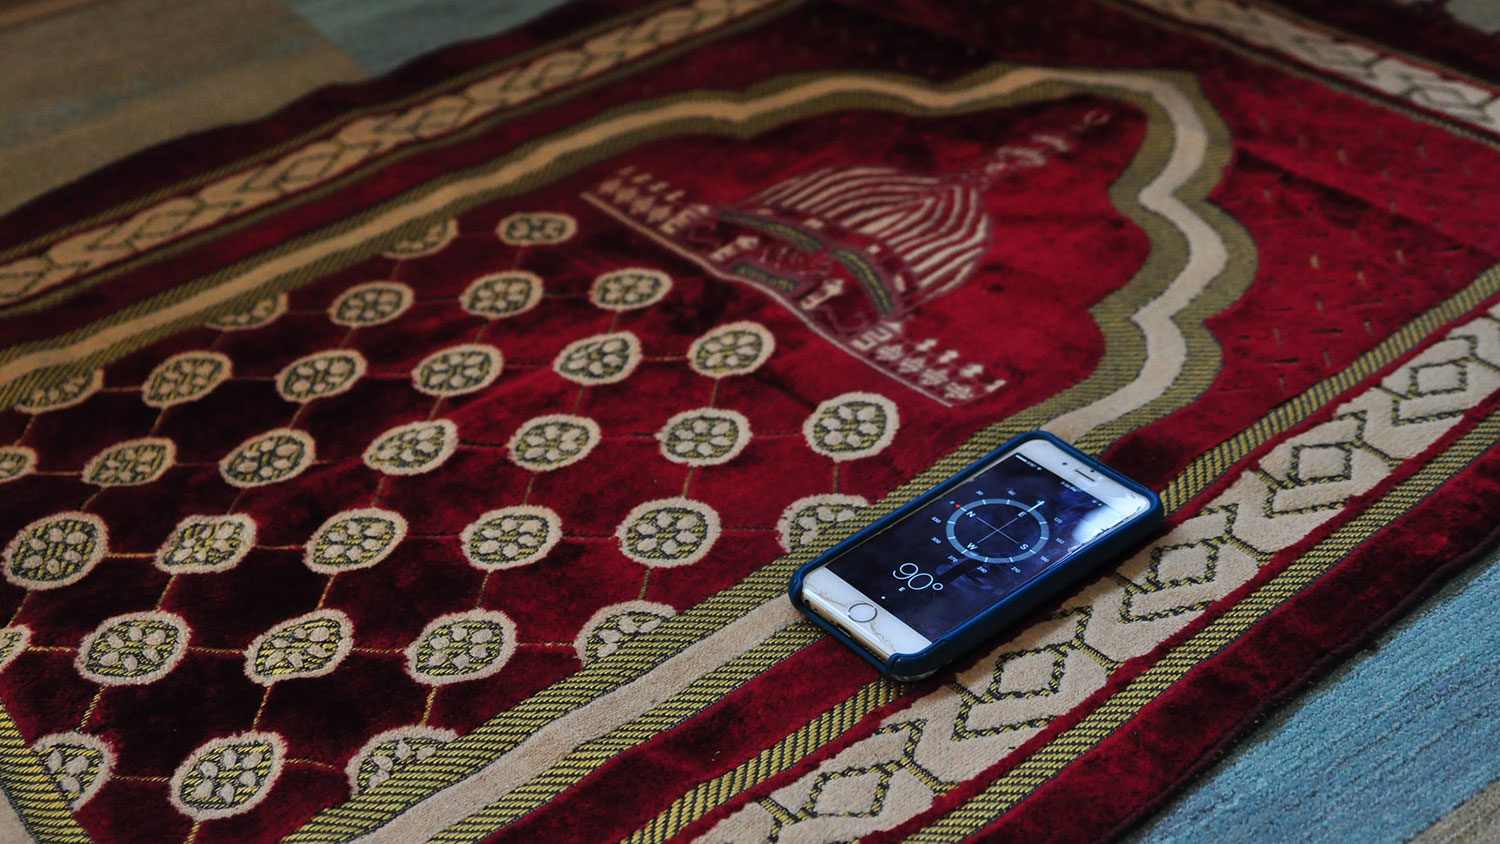 Prayer rug and compass in interfaith prayer space